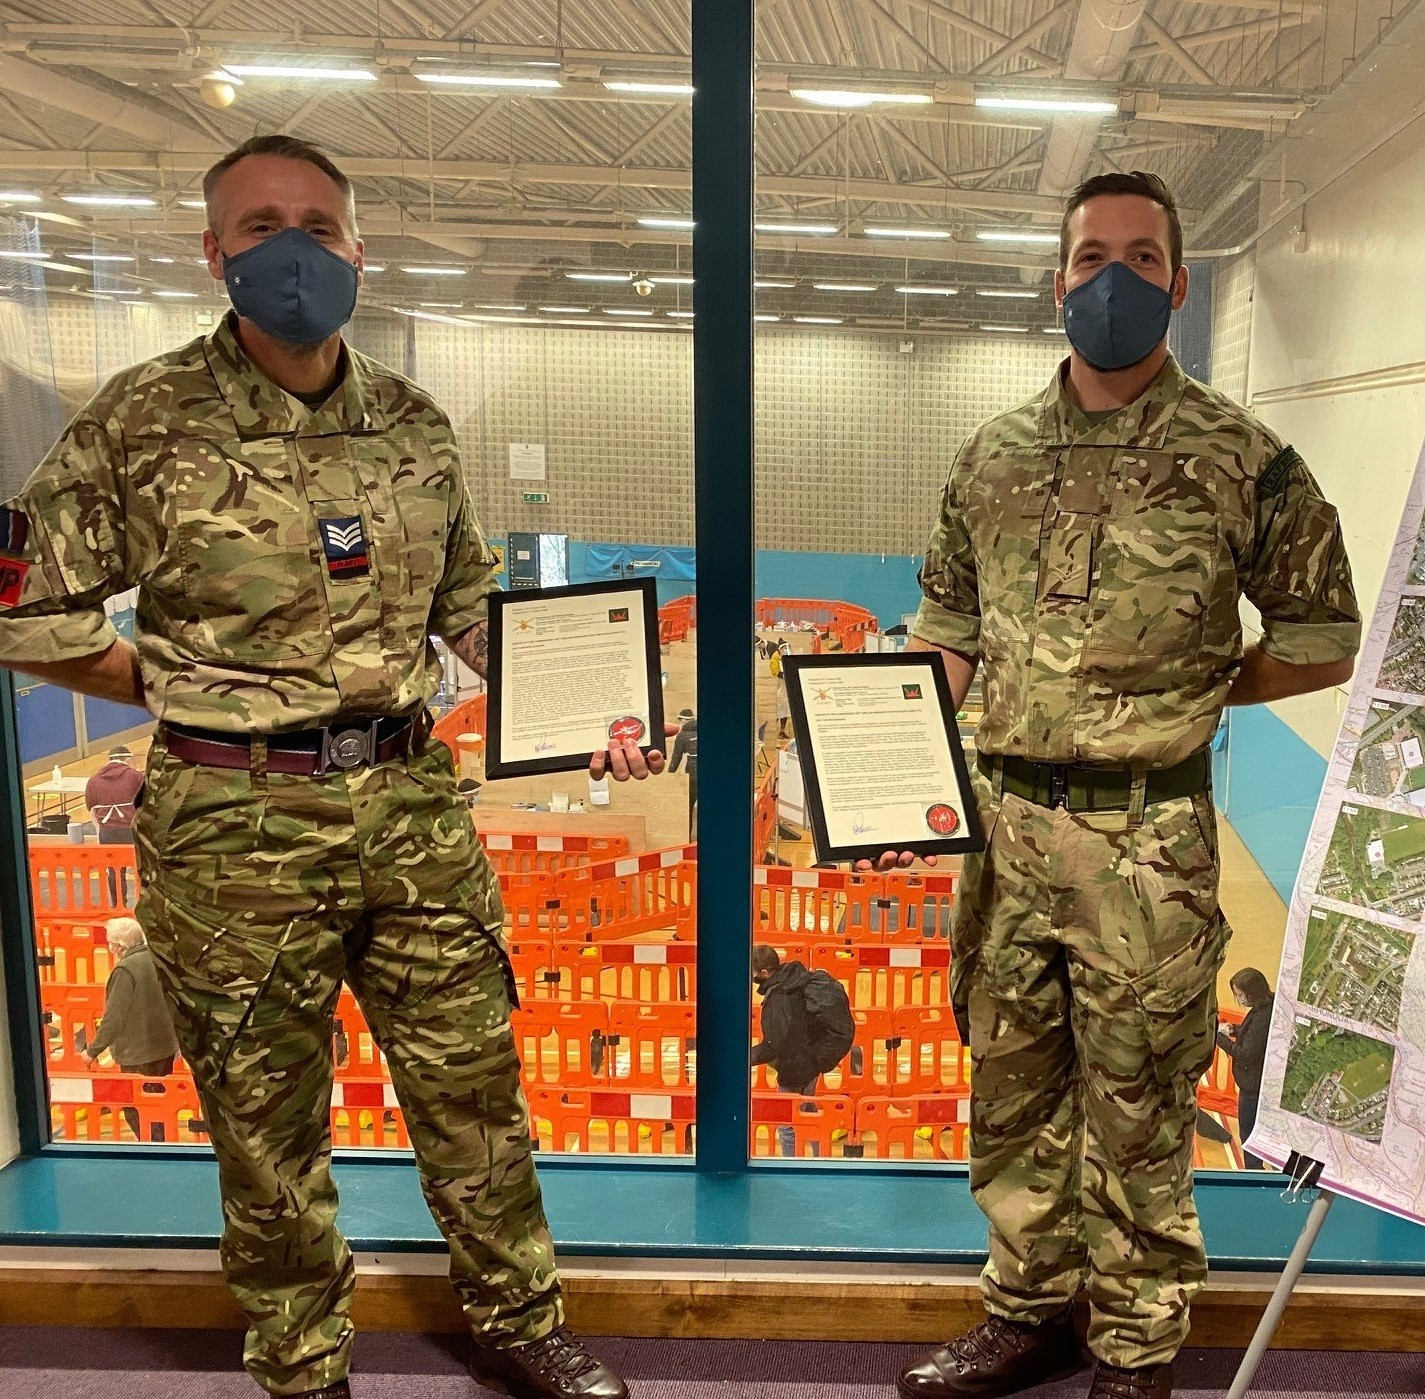 Mass coronavirus testing efforts leads to award for Monmouthshire corporal